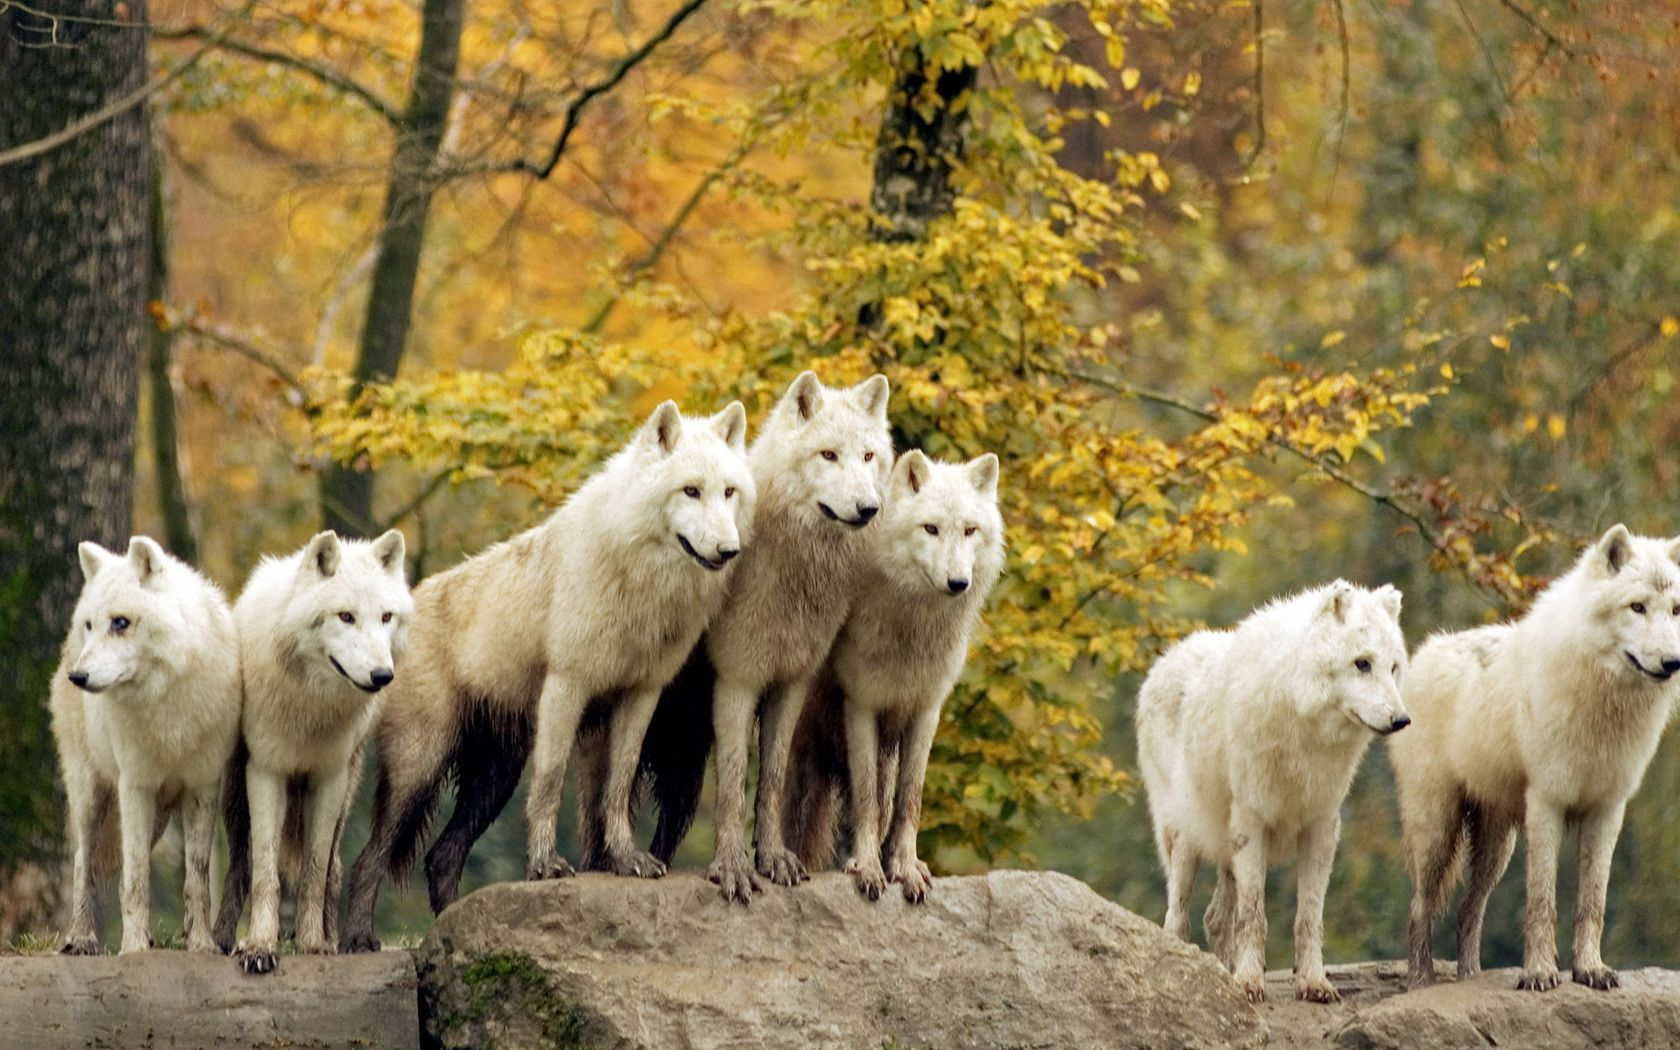 121461 download wallpaper Animals, Wolfs, Trees, Grass, Autumn, Forest, Family, Flock, Hunting, Hunt screensavers and pictures for free